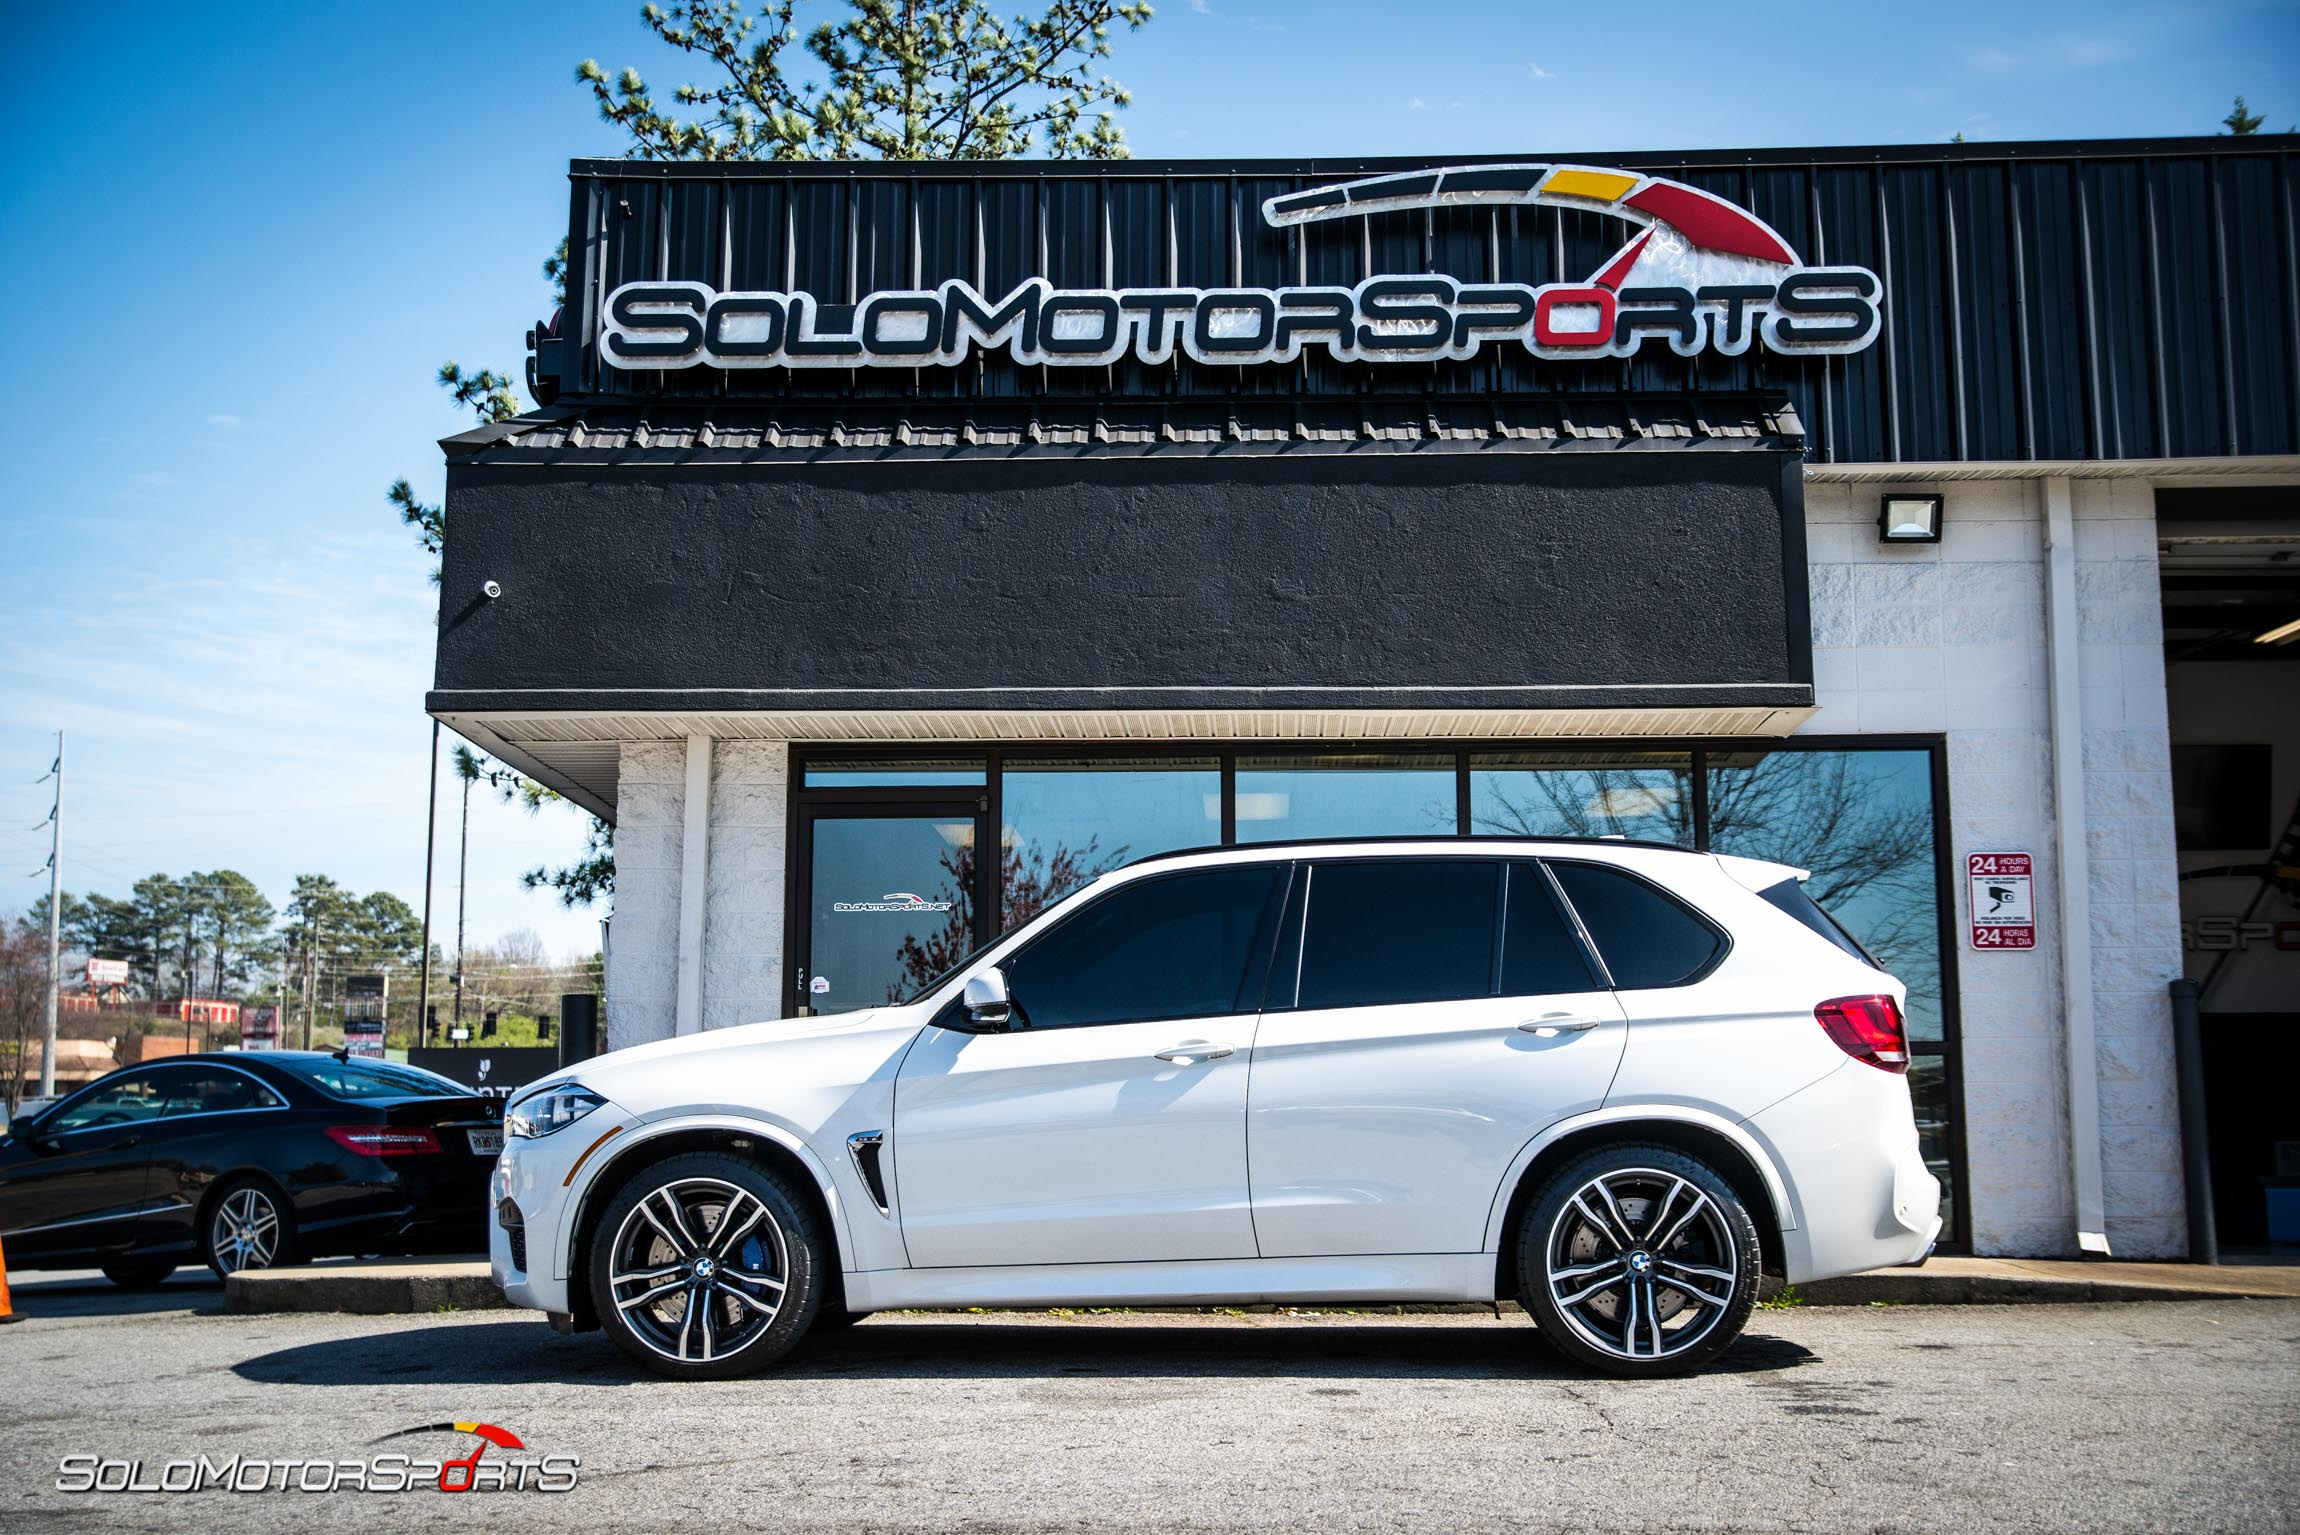 bmwperformance x5m bmw atlanta bmwx5m bmw tuning one stop shop custom tune tuning dyno dynometer stage1 stage 1 v8 twinturbo